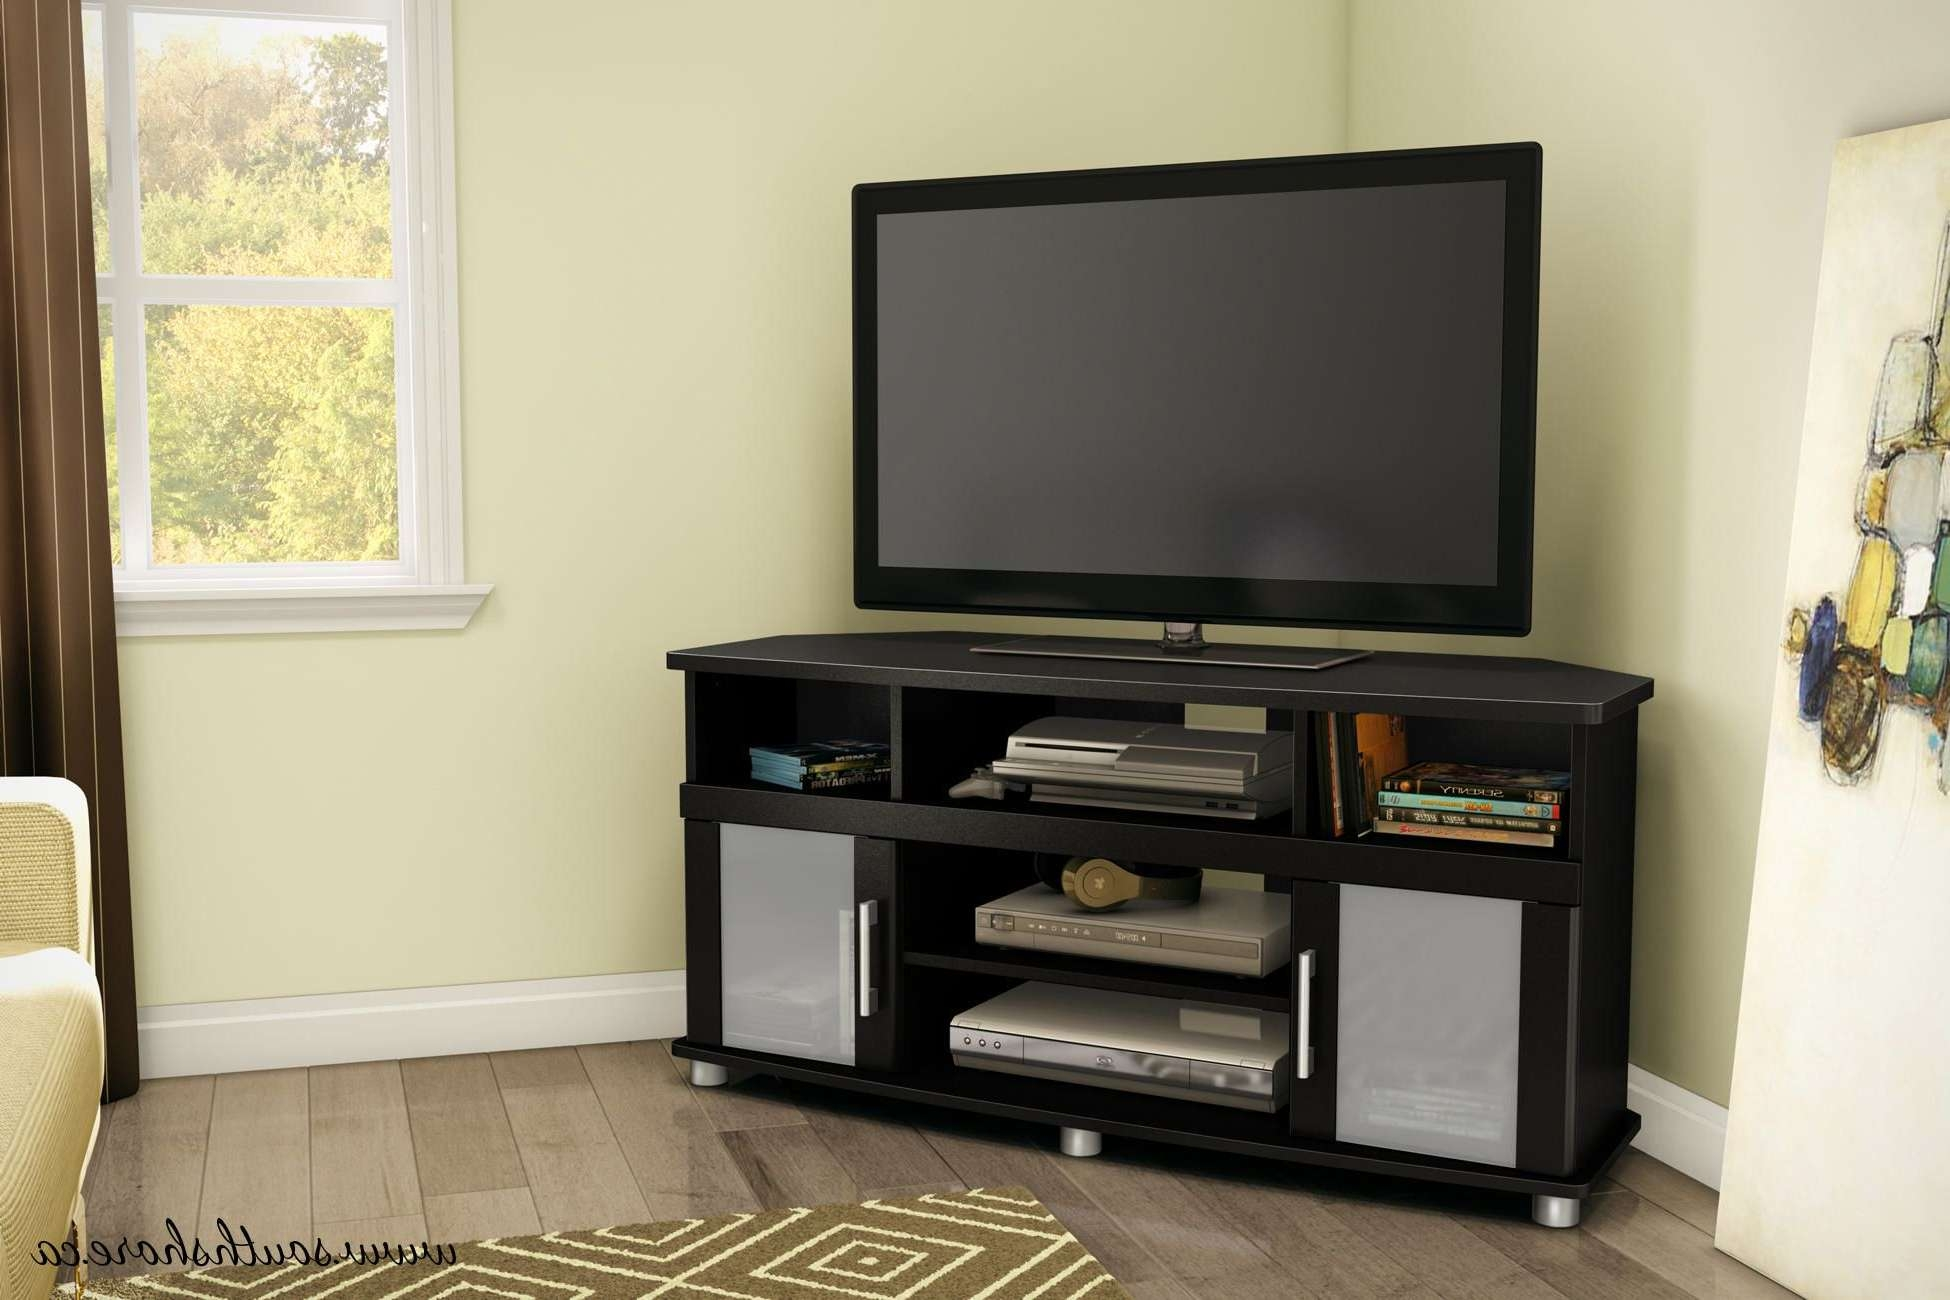 Storage Cabinets Ideas : Corner Tv Cabinet Cream Choosing The With Regard To Cream Corner Tv Stands (View 9 of 15)